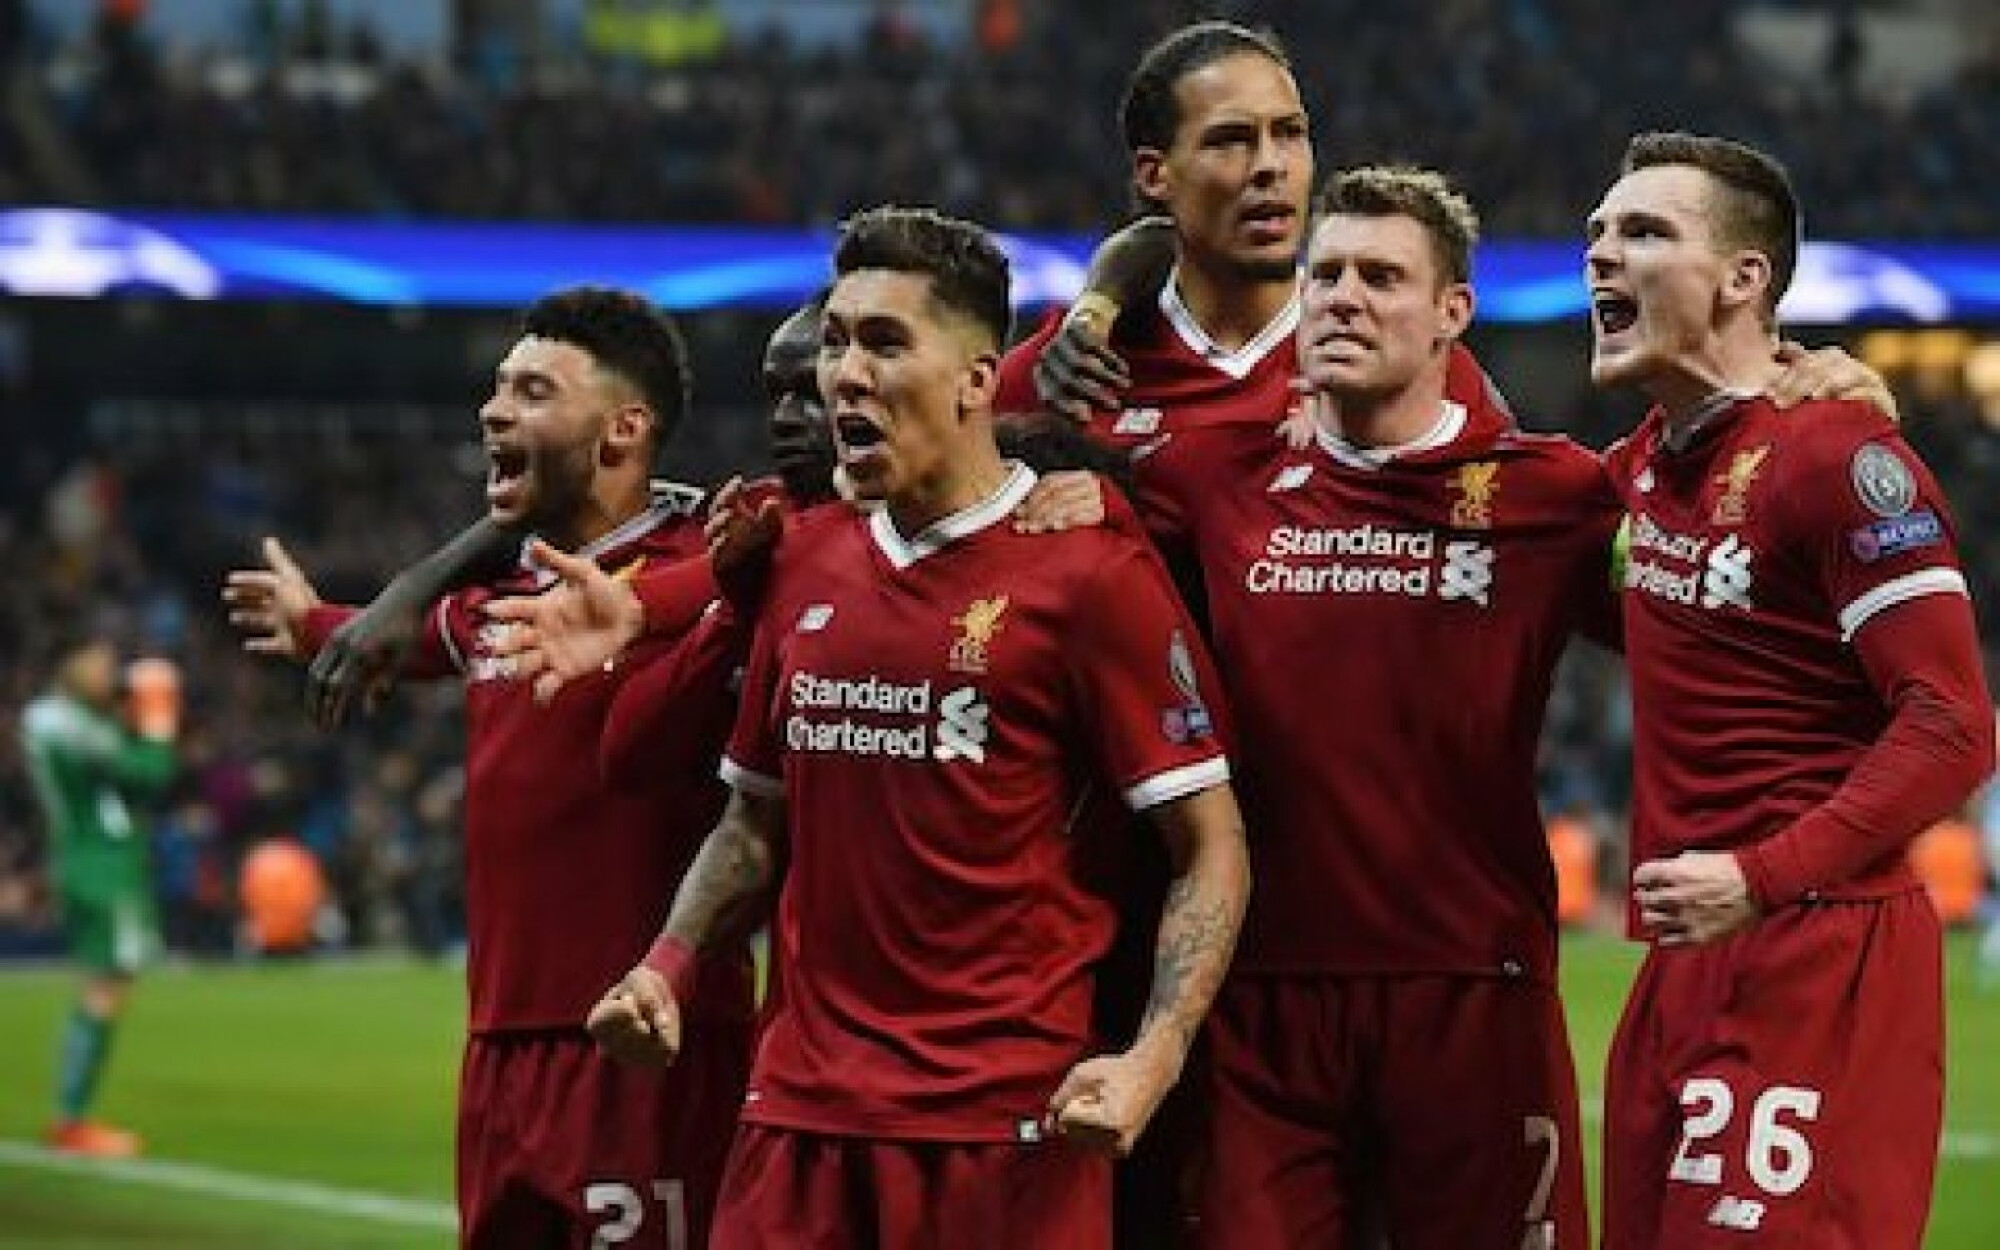 Are Liverpool genuine title contenders?